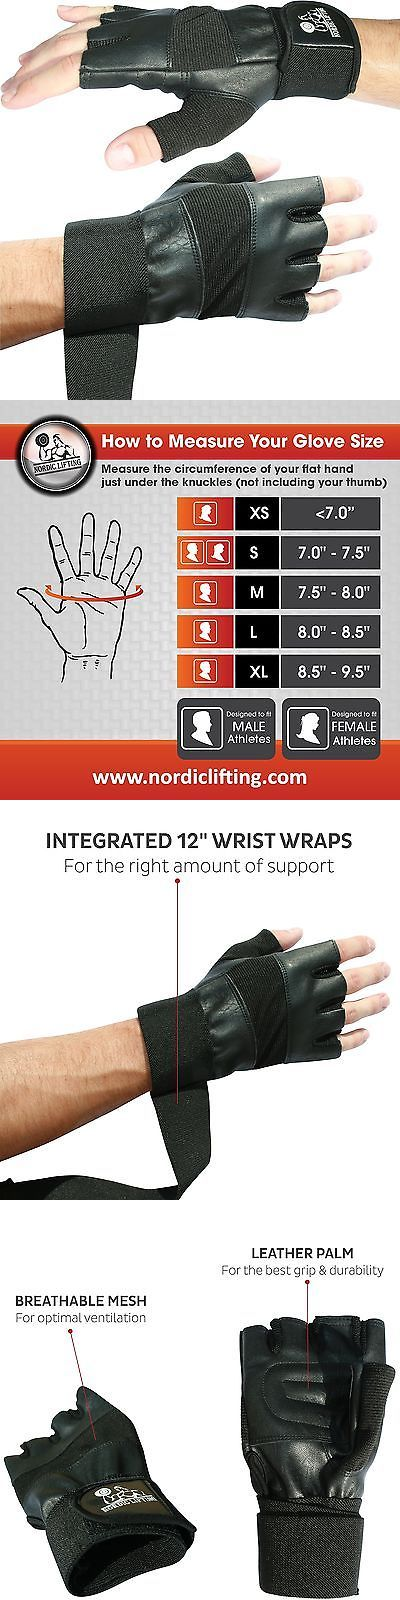 Gloves Straps and Hooks 179820: Weight Lifting Gloves With 12 Wrist Wraps Support For Gym Workout Cross Trai... BUY IT NOW ONLY: $30.59